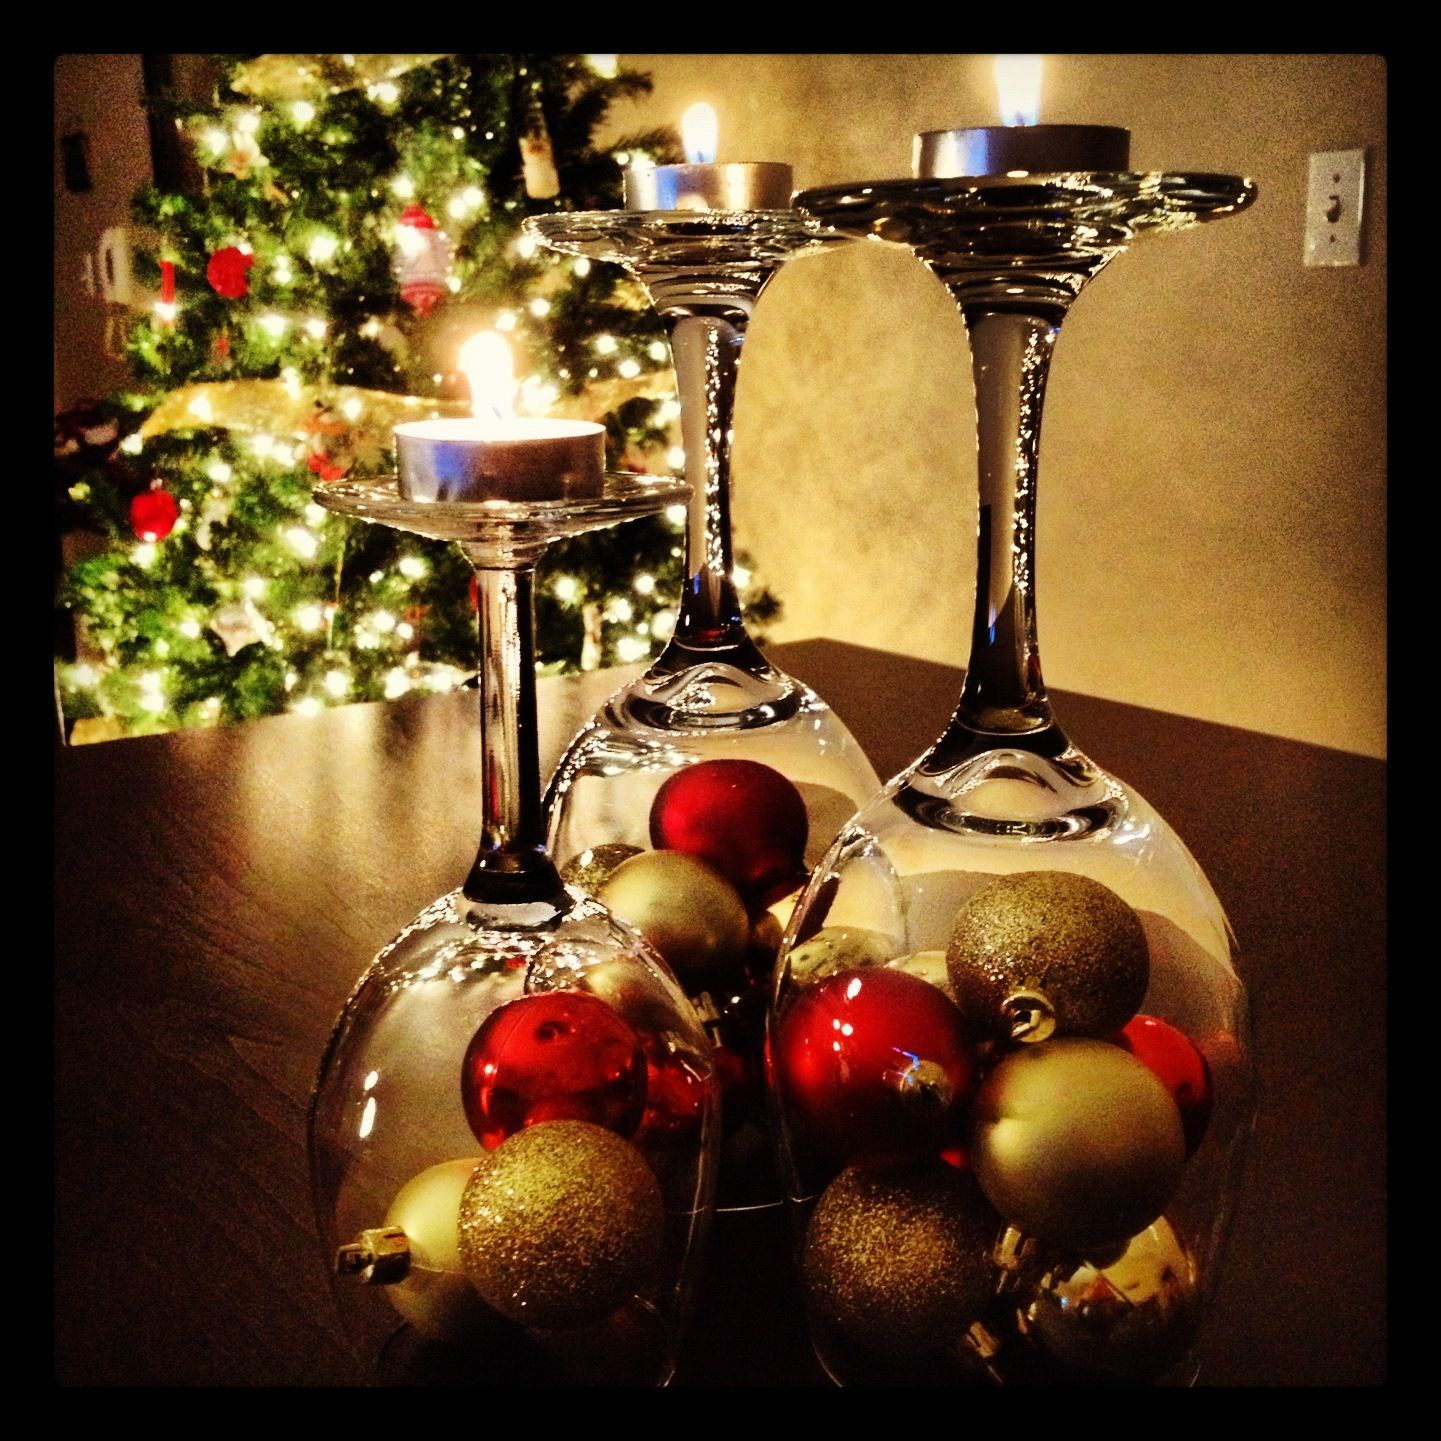 Wine glasses, tea lights, and ornaments from the dollar store, total cost $5..great holiday decoration!